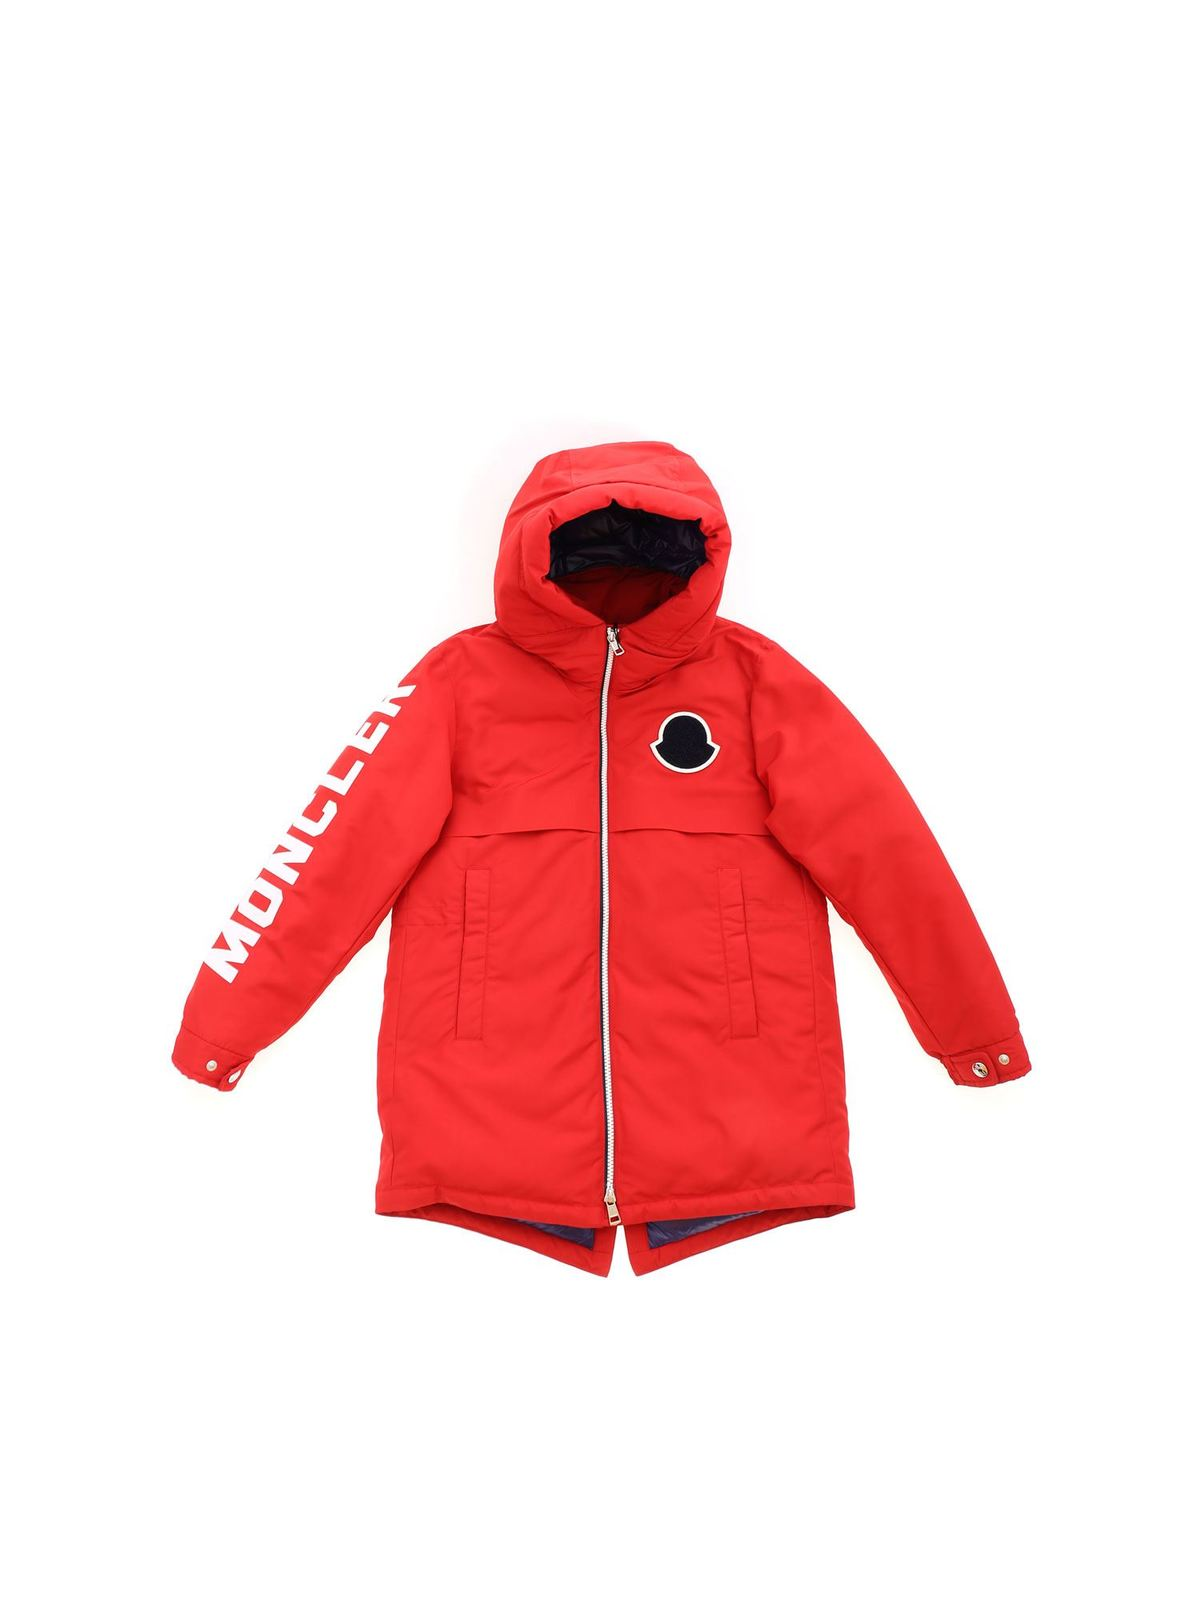 MONCLER JR AIRON DOWN JACKET IN RED